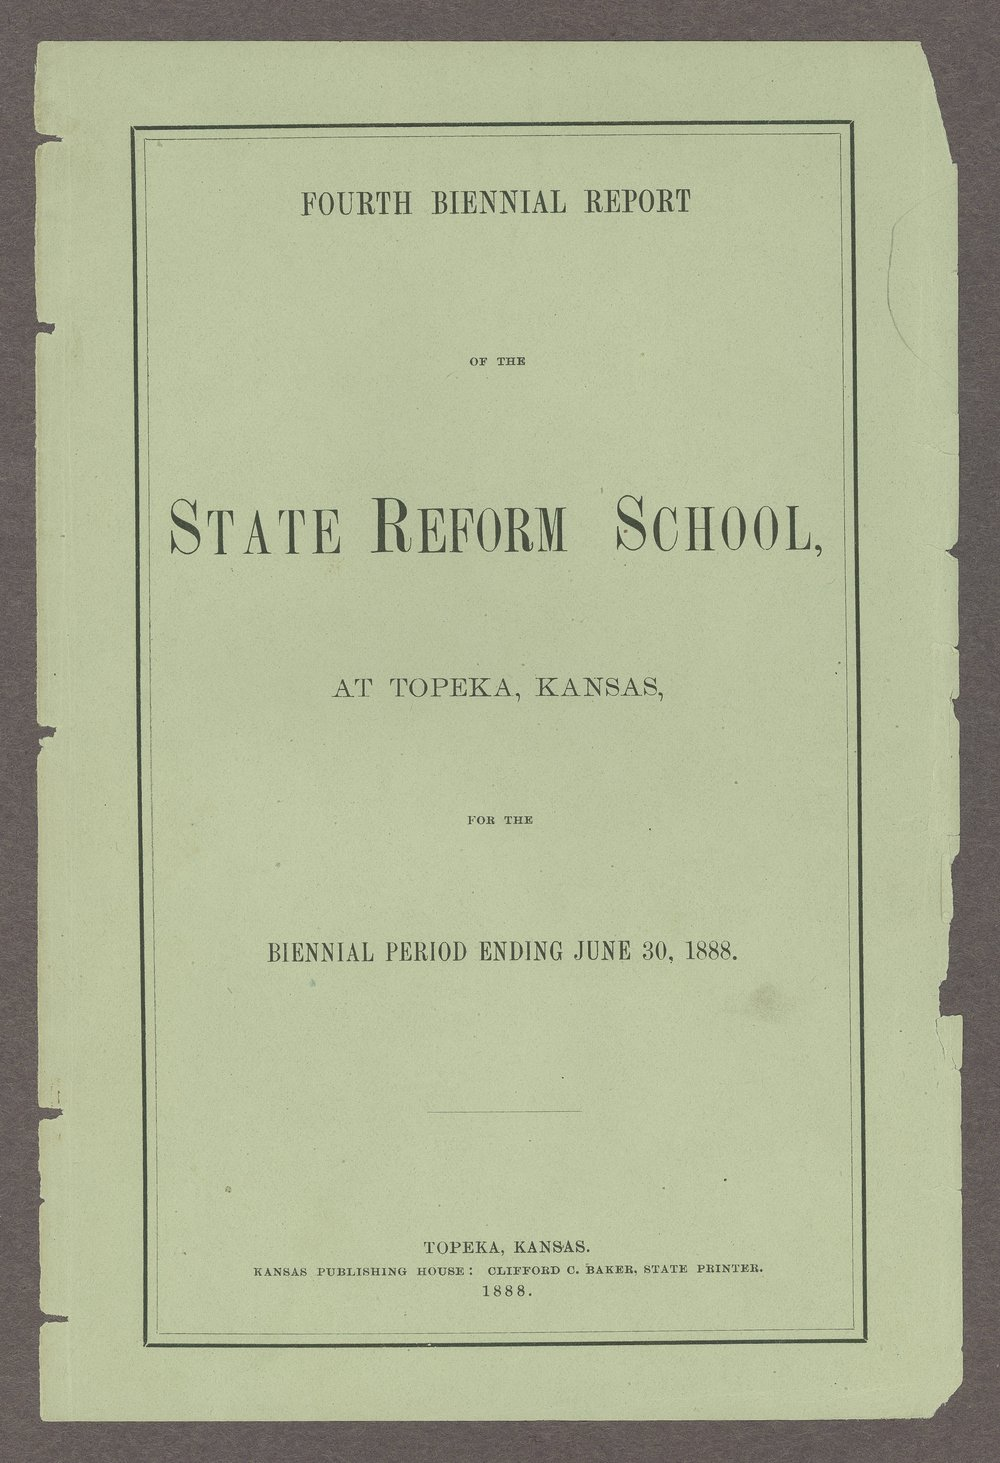 Biennial report of the State Reform School, 1888 - Front Cover